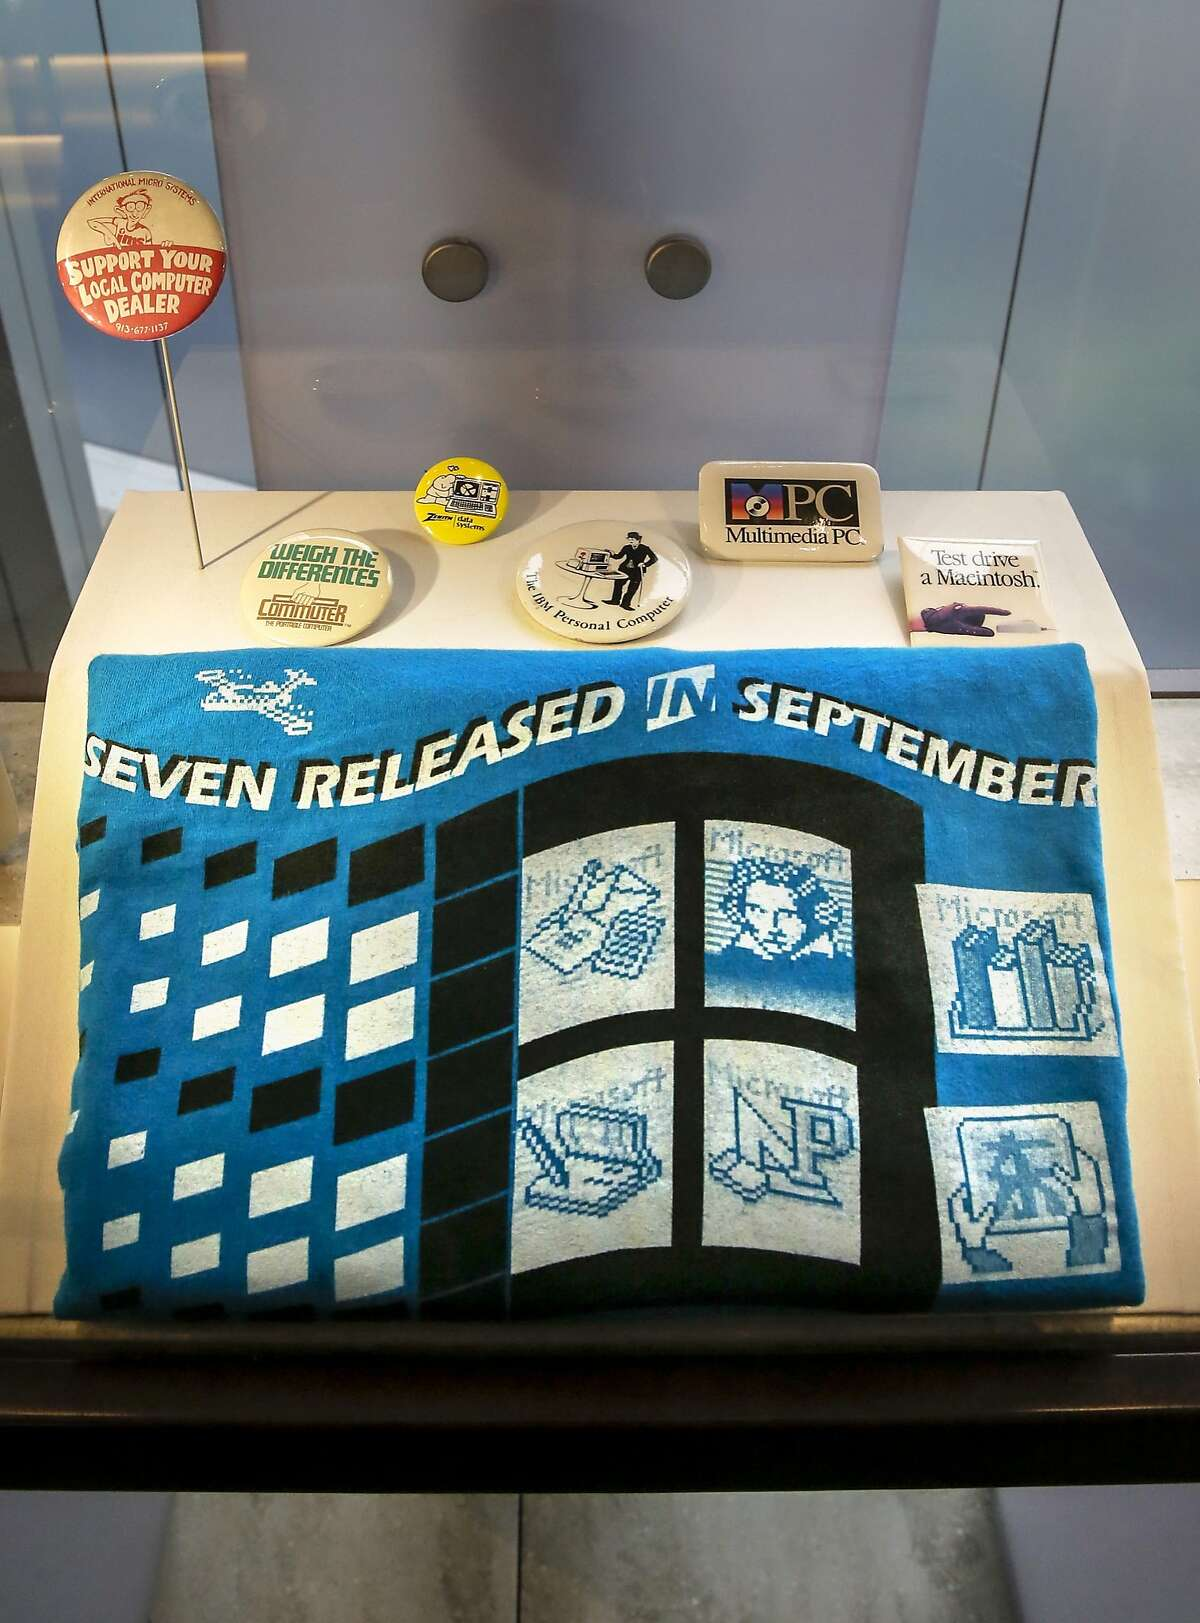 Mircosoft gave their employees this Super Team tee shirt back in 1999, which is on display at the Computer History Museum in Mountain View, Calif., on Fri. July 10, 2015.